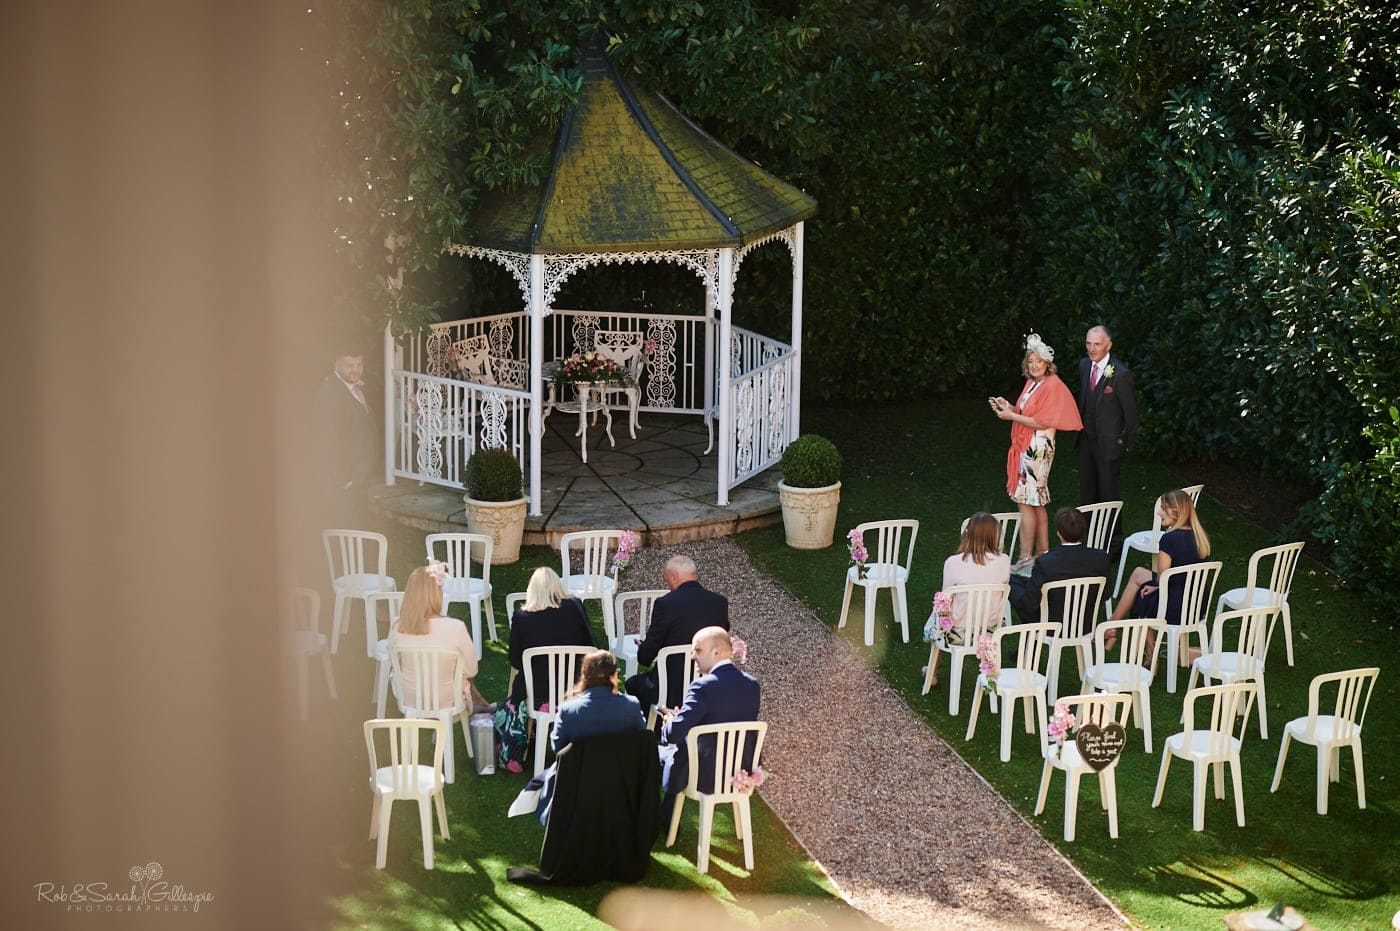 Wedding guests arrive and take their seats for outdoor ceremony in gardens at Pendrell Hall